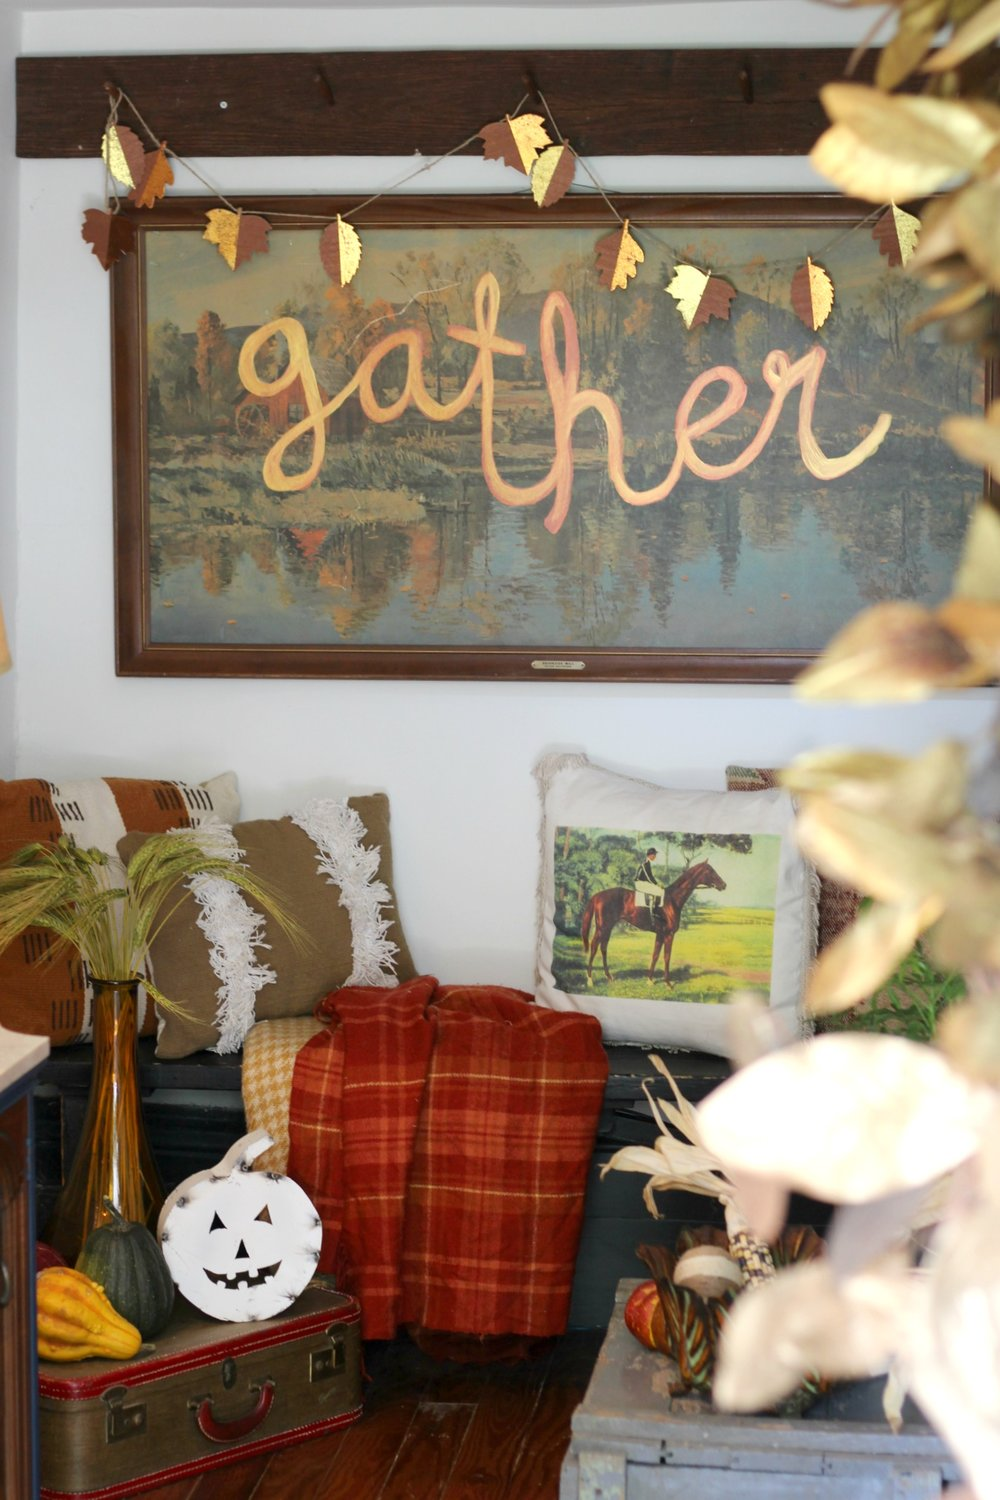 Leaf garland: Target (old)   |   Plaid blankets + horse pillow: thrifted   |    Fringe pillow: Target (old)   |   Suitcase: Thrifted   |   Amber vase: Marshall's    |   White metal jack-o-lantern: Sarah Smith Salvage